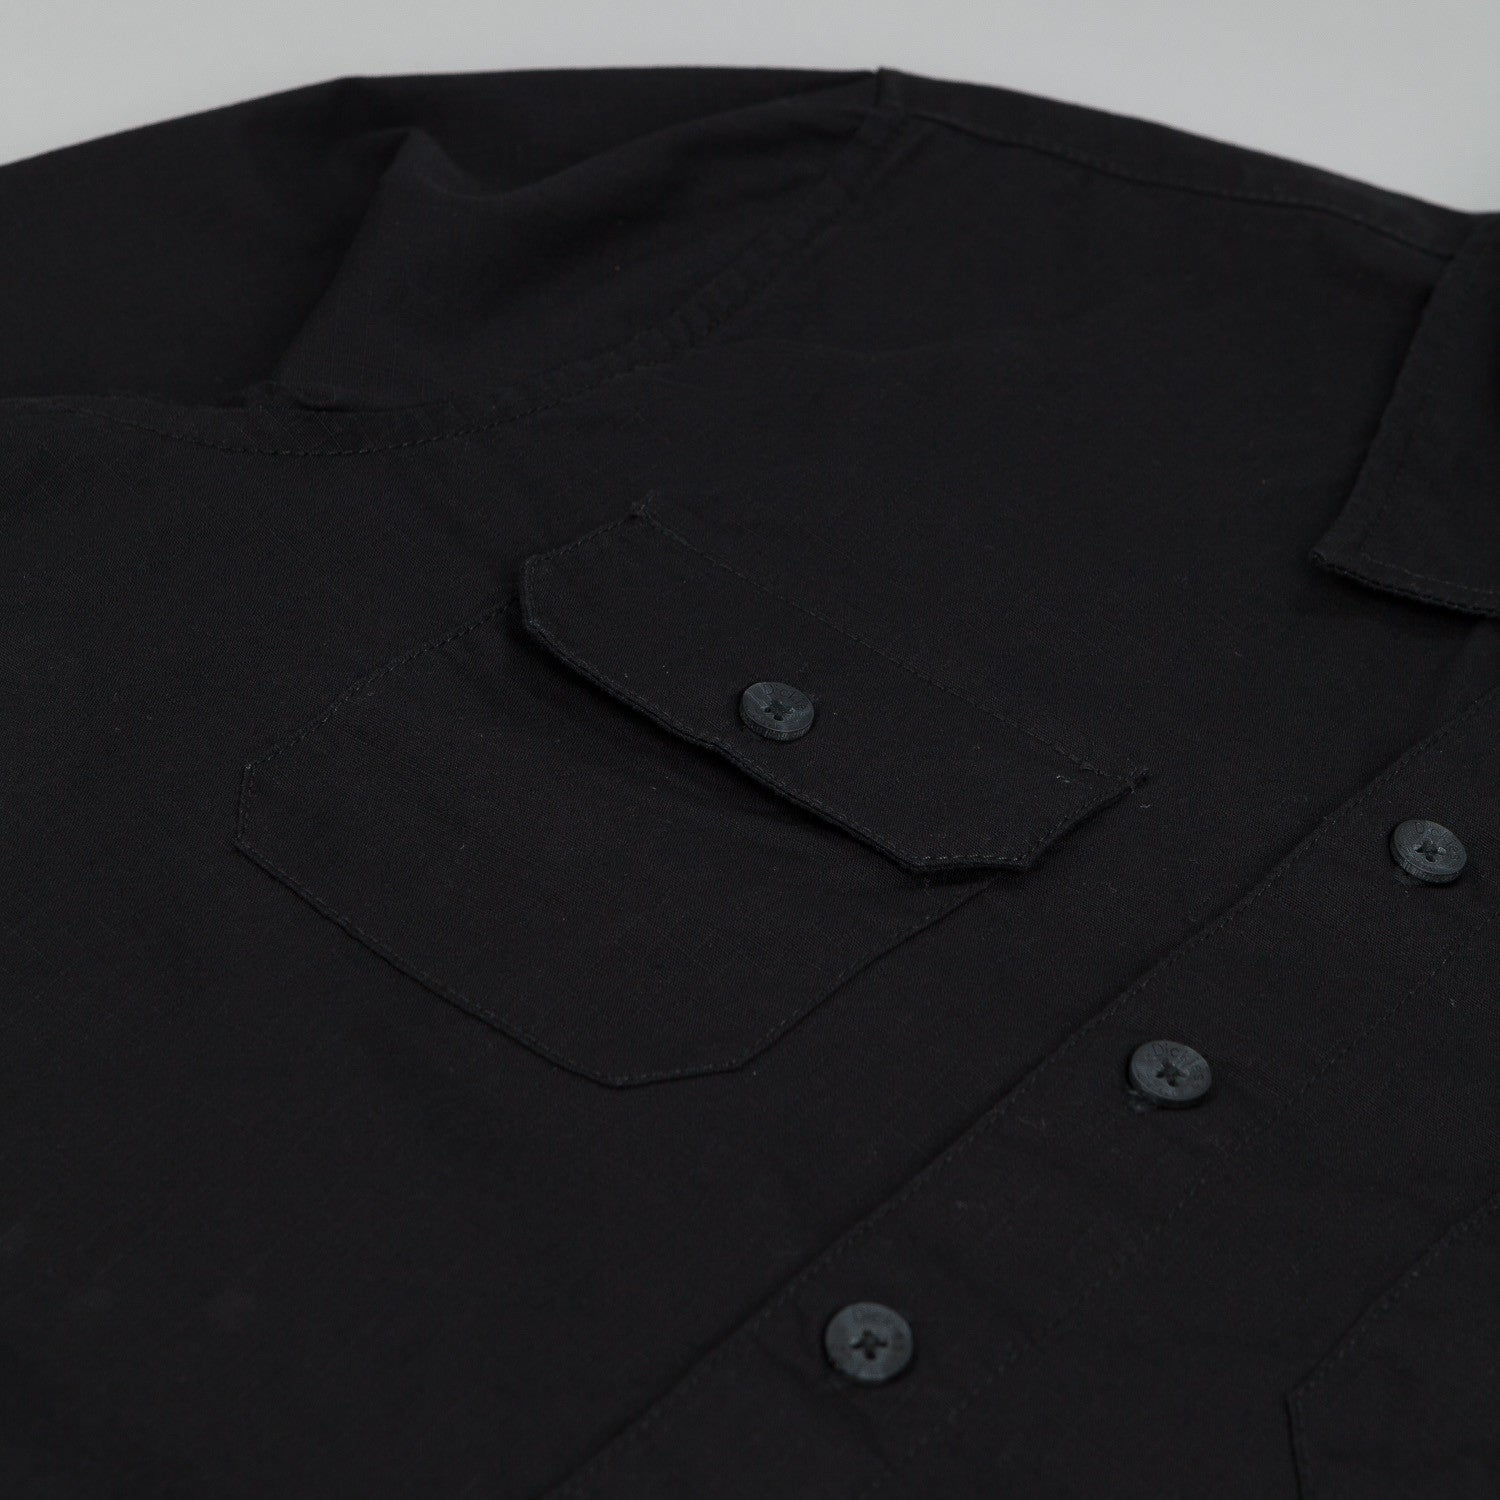 Dickies Tallahassee Long Sleeve Shirt - Black